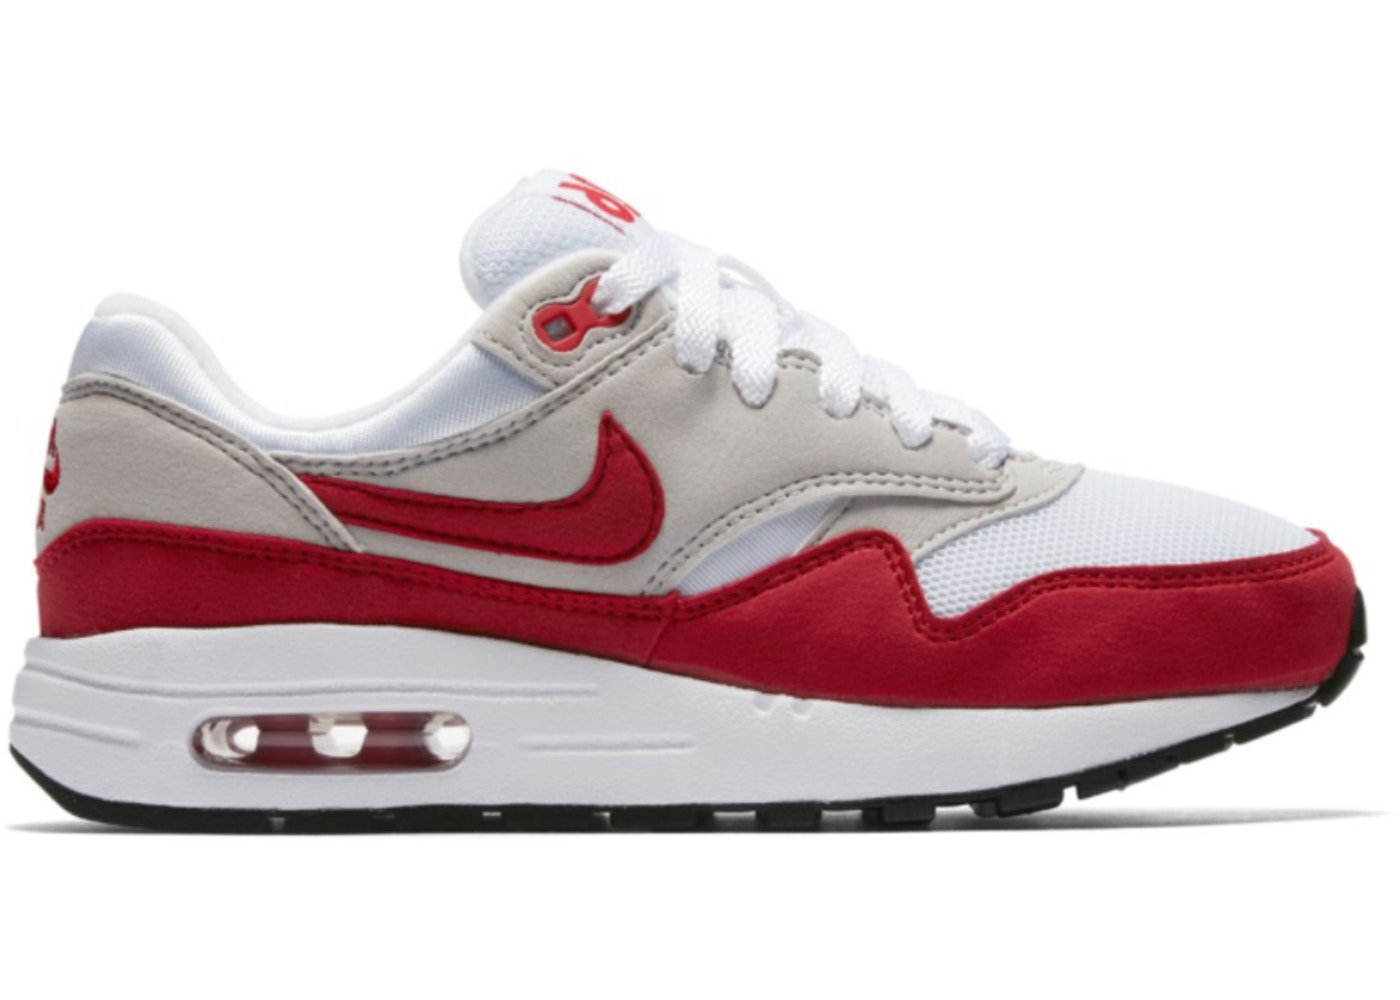 premium selection 6548e c87f7 Air Max 1 Air Max Day Red 2017 (GS)